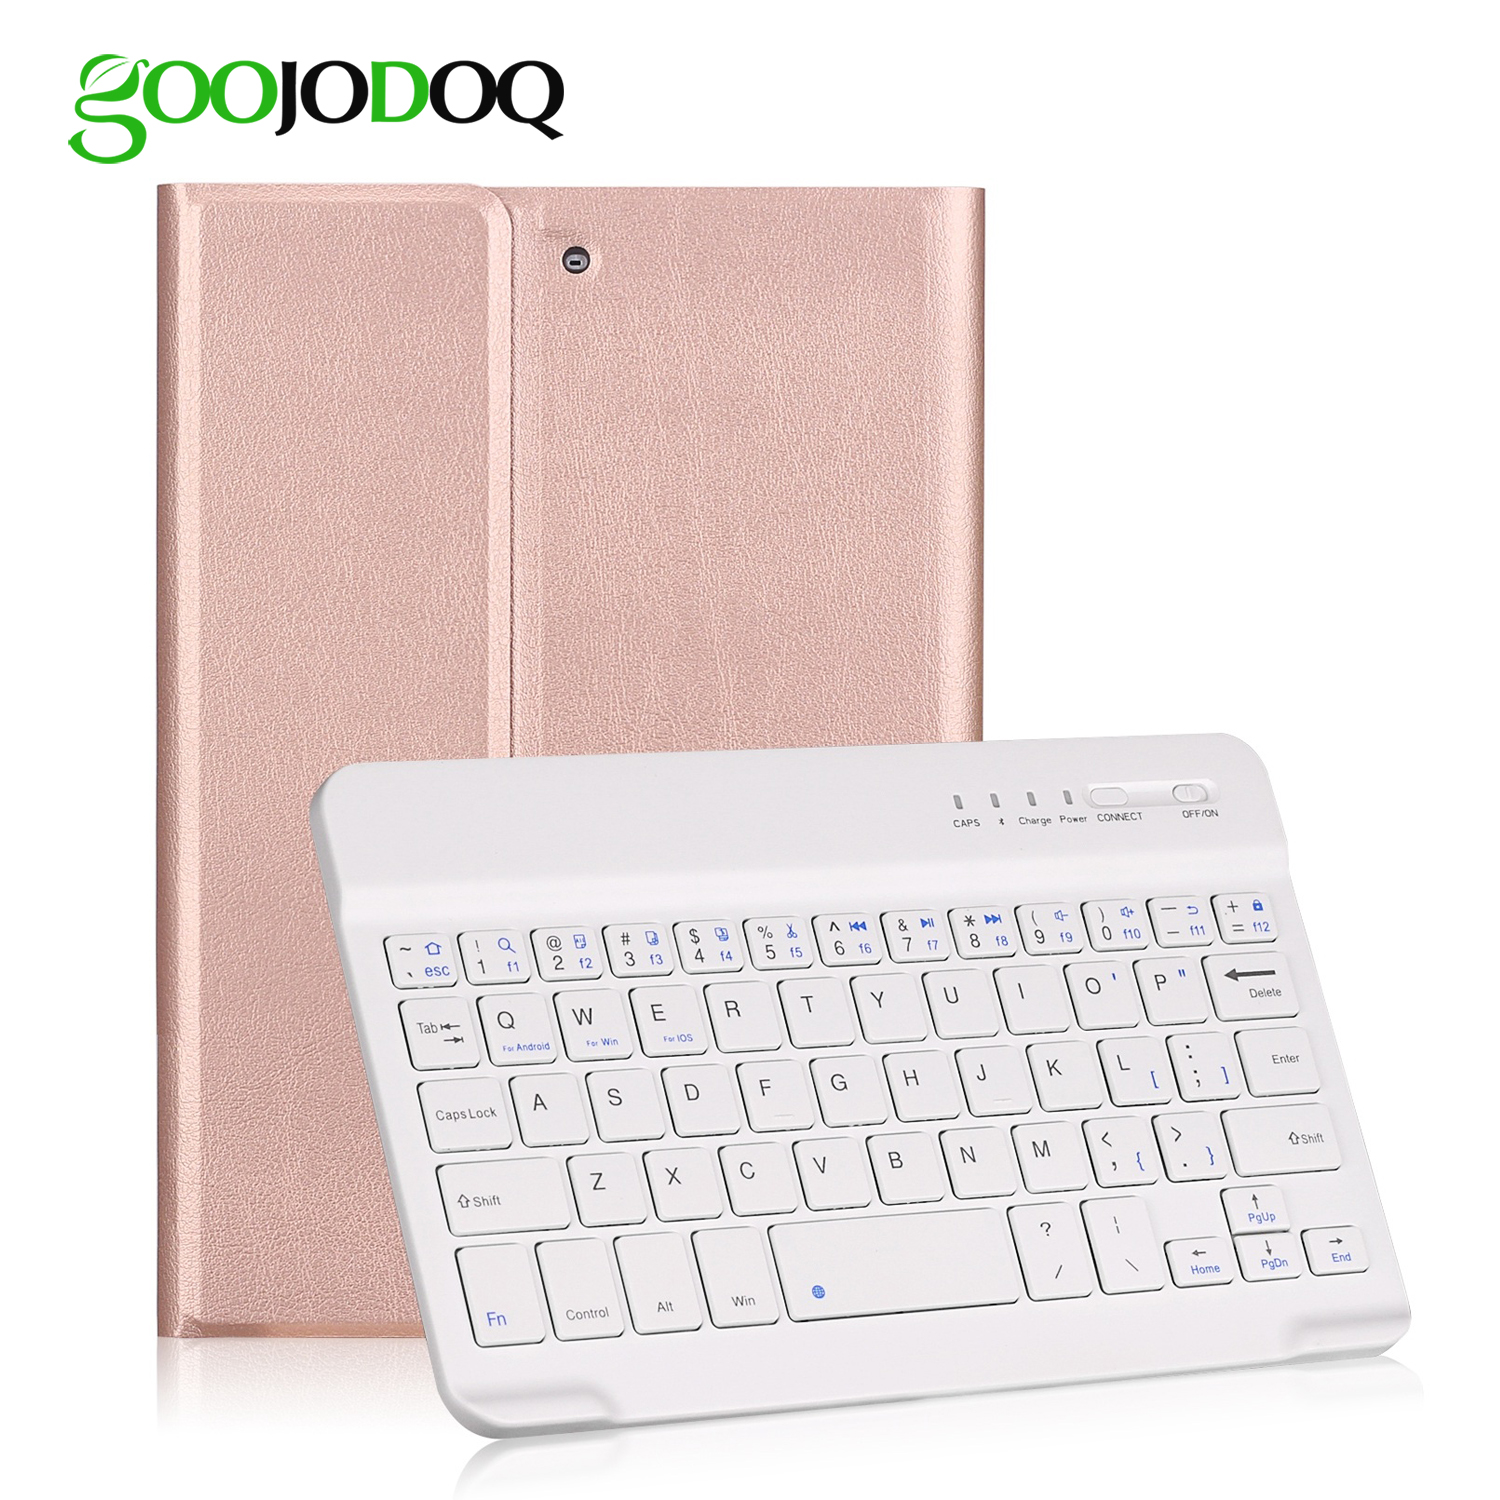 Keyboard Case For iPad Mini 3 2 1 [Multiple Stand] PU Leather Smart Cover for iPad Mini Case with Silicone Soft Inside+ Keyboard foldable pu leather pad cover with flower girl driving style inlaid diamond support stand for ipad mini 3